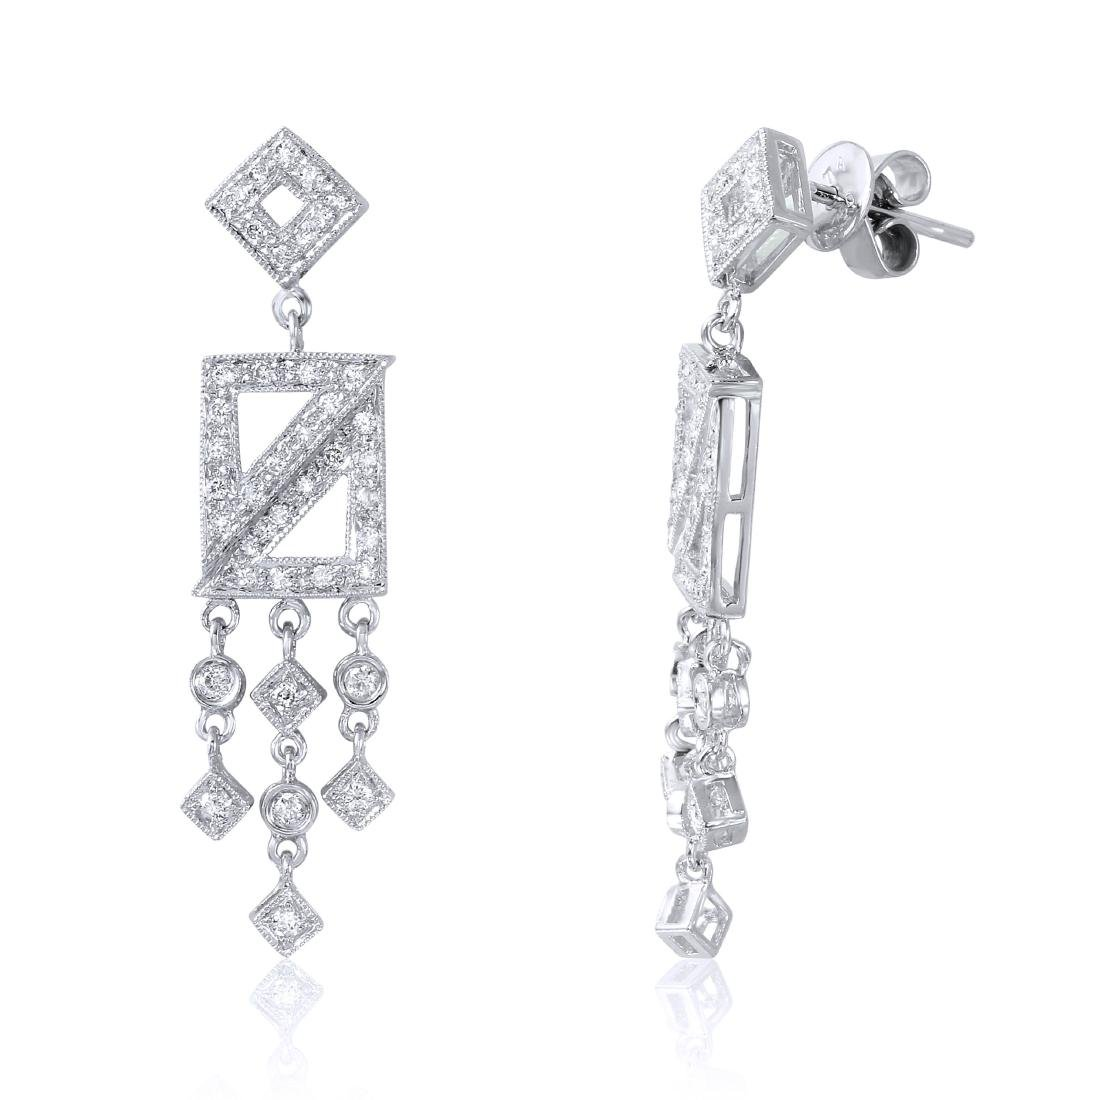 18KT White Gold Diamond Chandelier Earrings